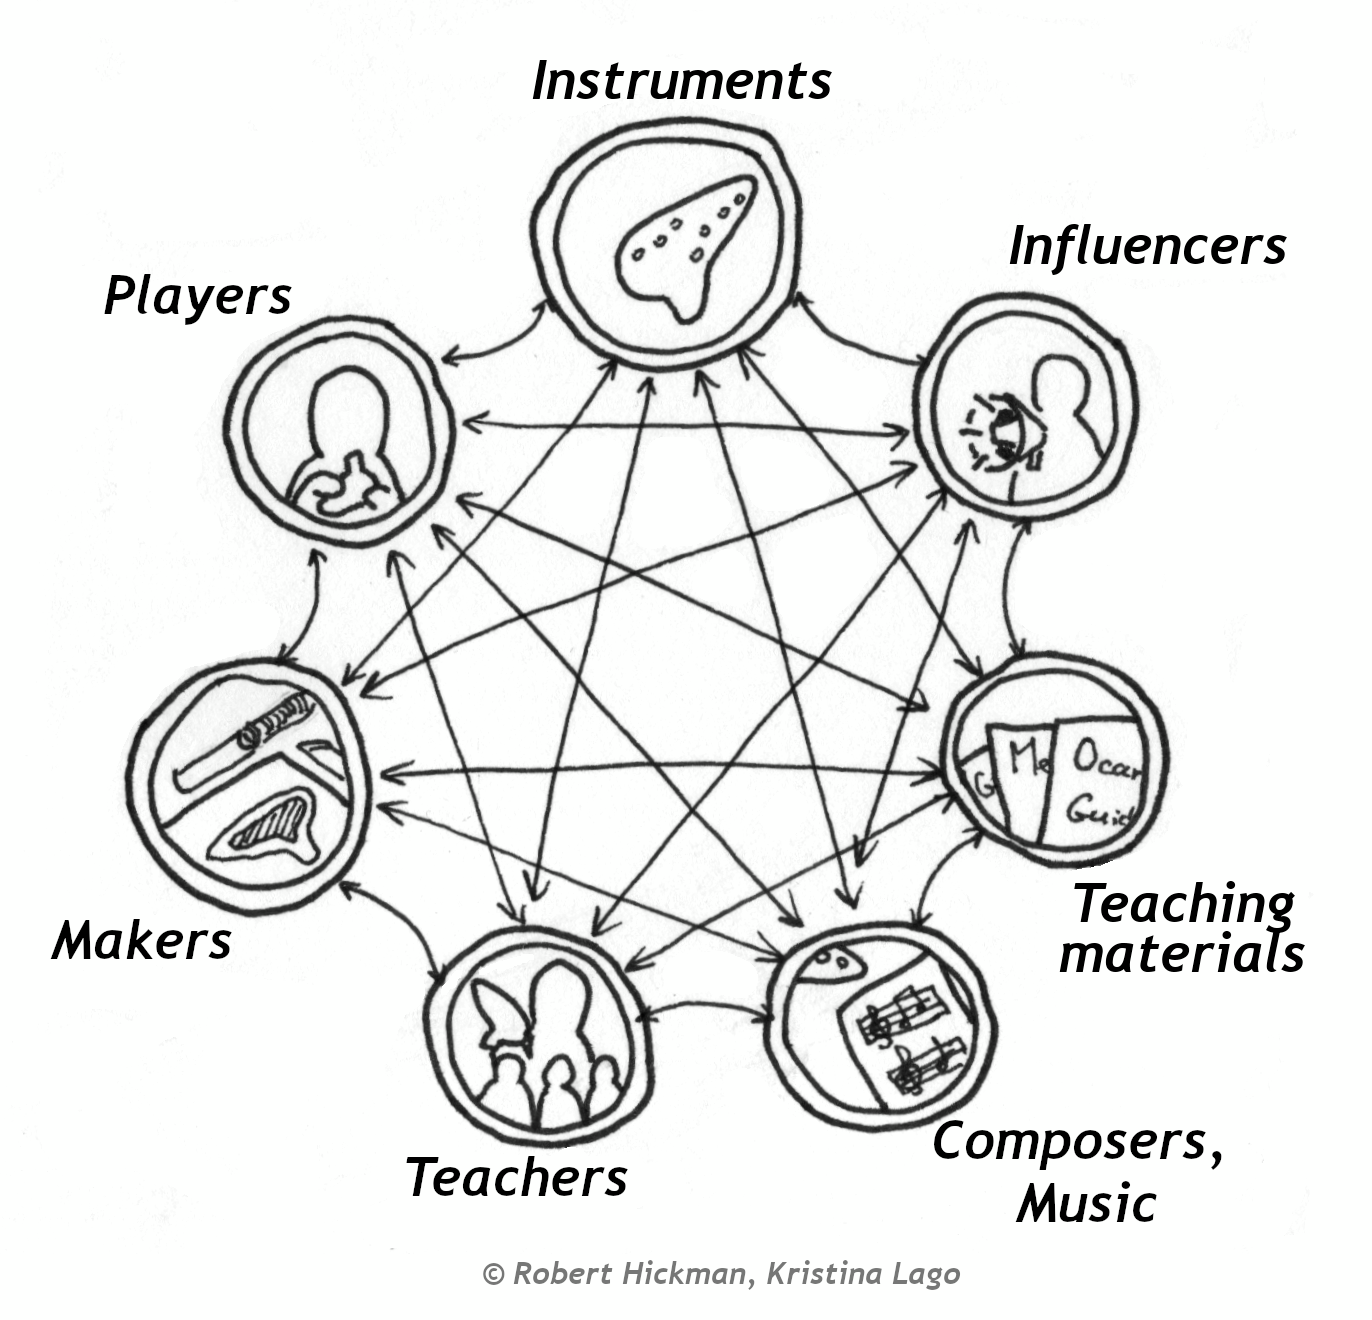 A diagram depicting the aspects of the ocarina's ecosystem: instruments, players, makers, teachers, composers, teaching materials, and influencers. Often, people only think about players and makers, but teachers, music and teaching materials are also very important